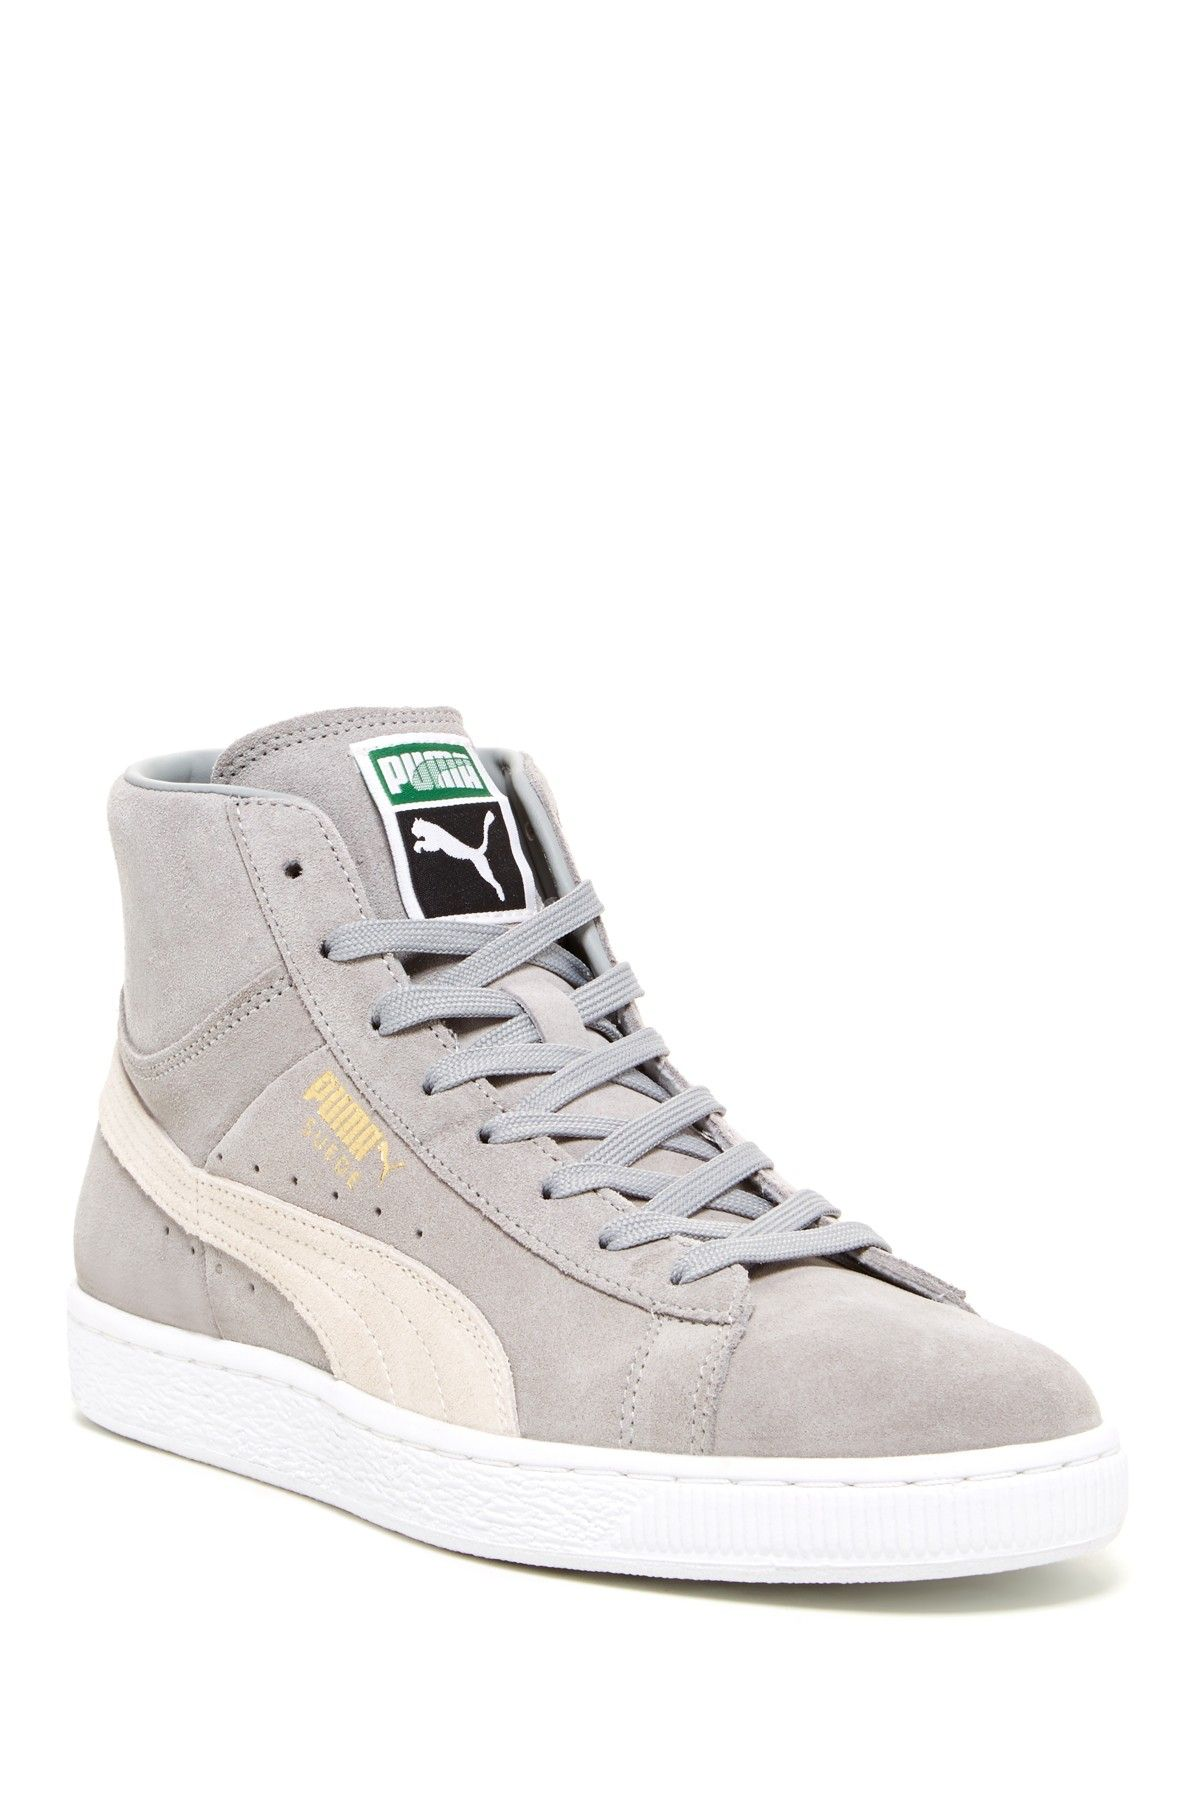 Puma suede, Classic sneakers, Snicker shoes